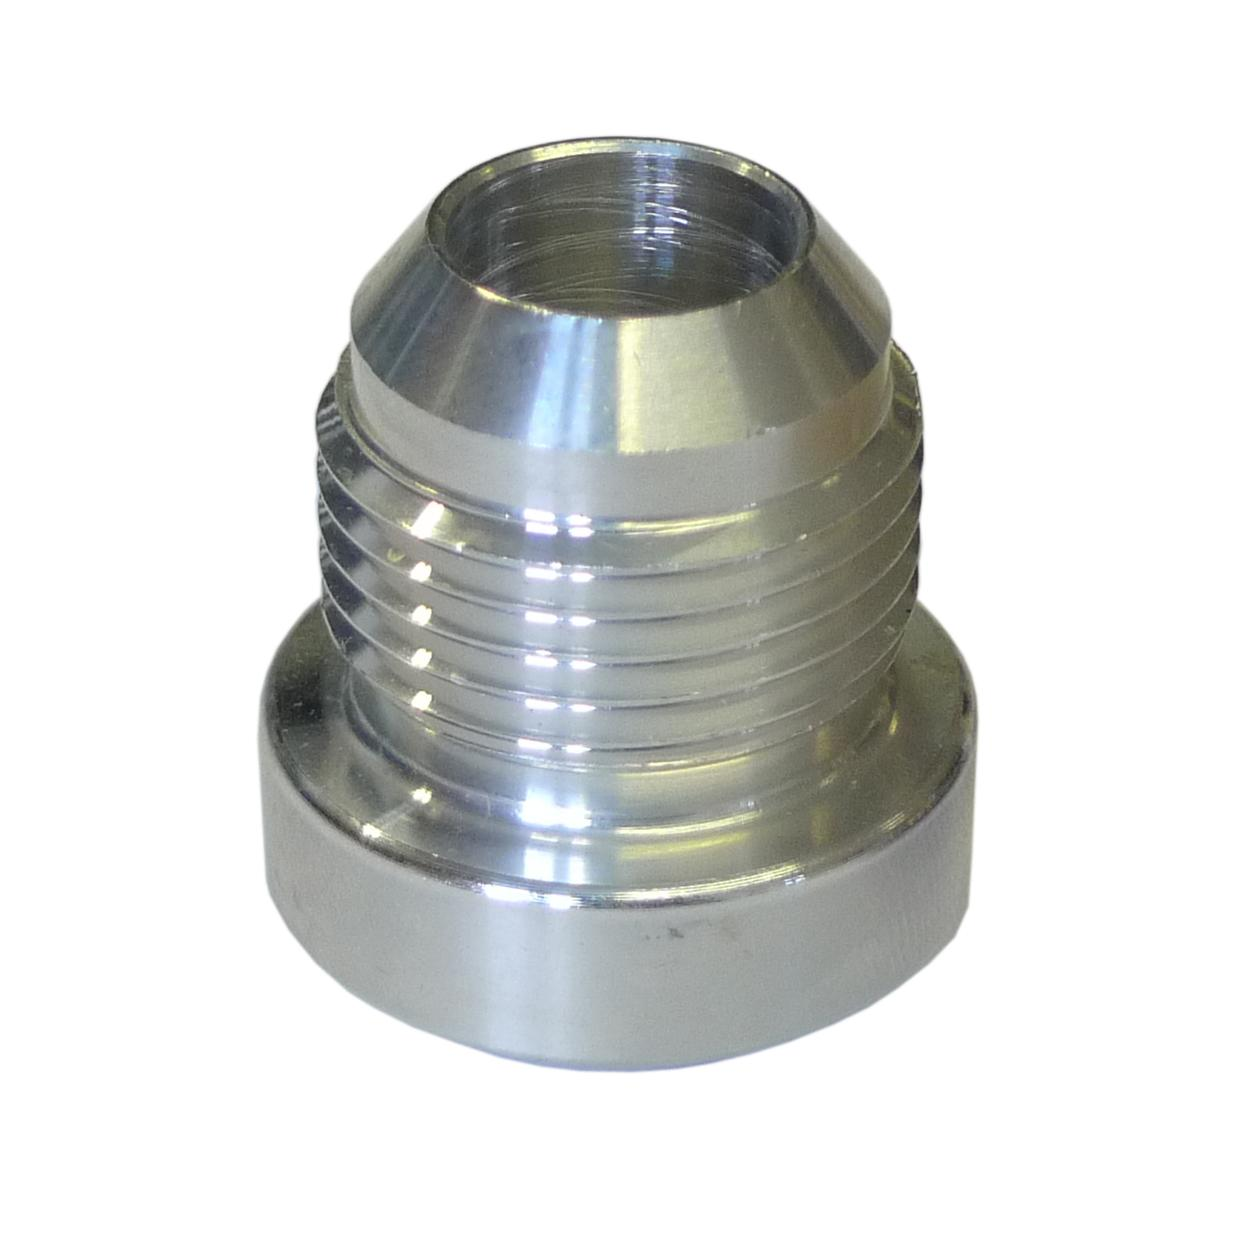 Jic round male fitting weld on alloy fabrication